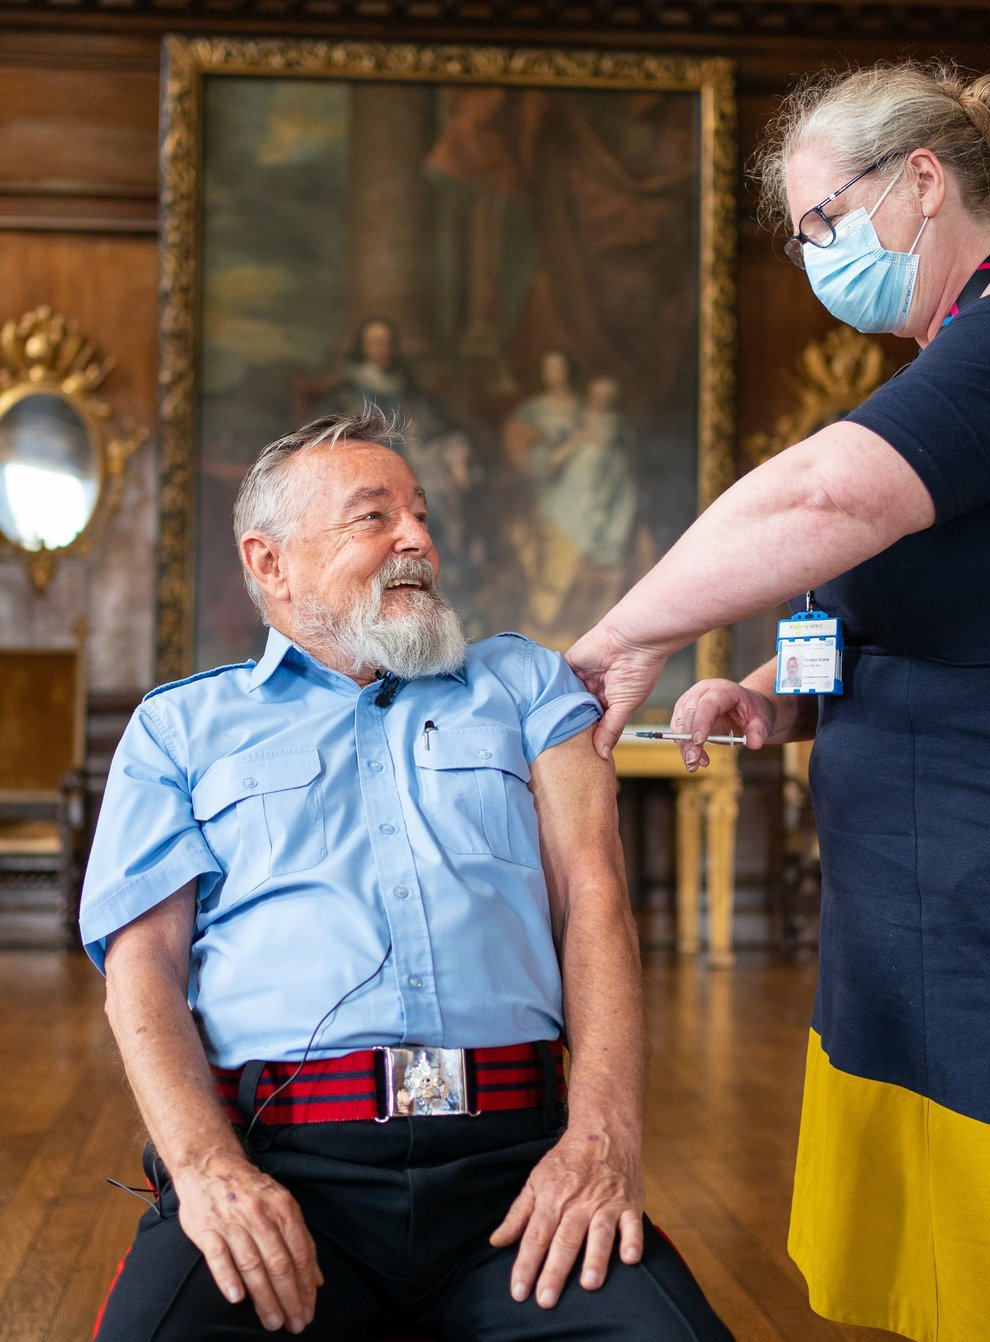 Chelsea Pensioner John Byrne receives a Covid-19 booster vaccination from deputy chief nurse Vanessa Sloane at the Royal Hospital Chelsea in London (Dominic Lipinski/PA)